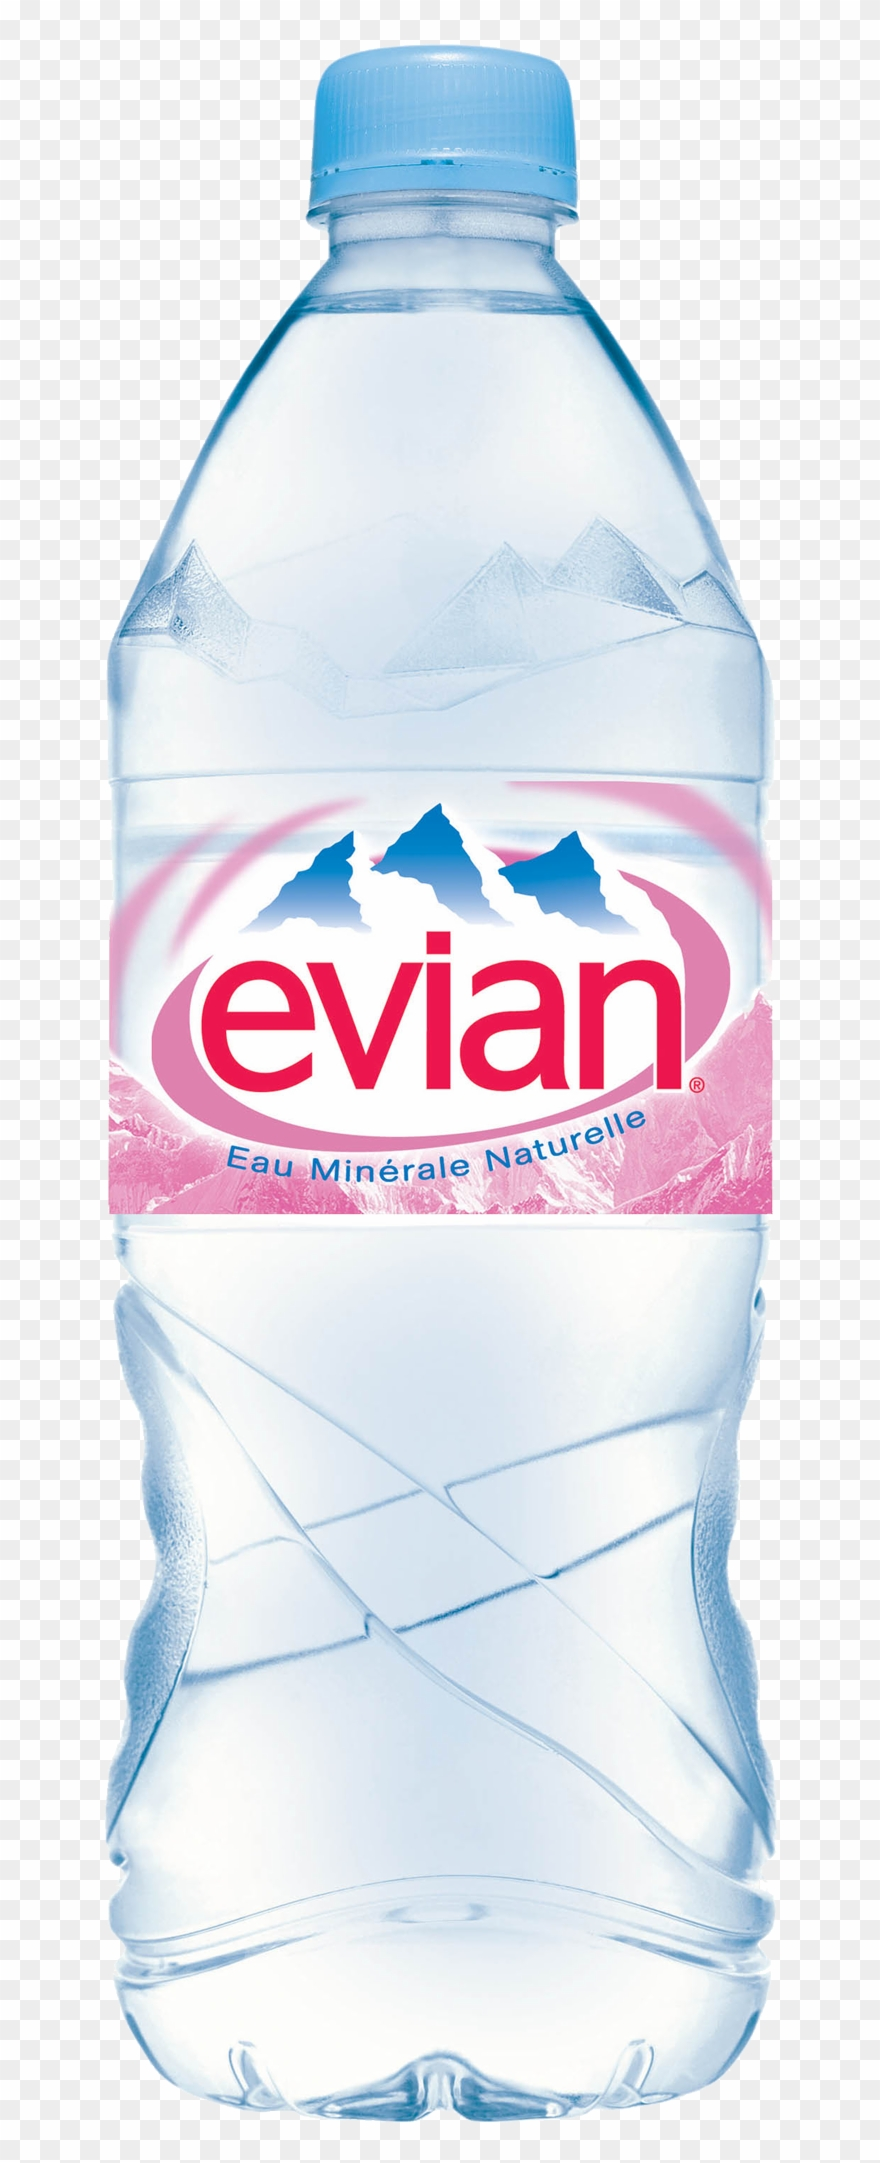 Water Bottle Png Image.